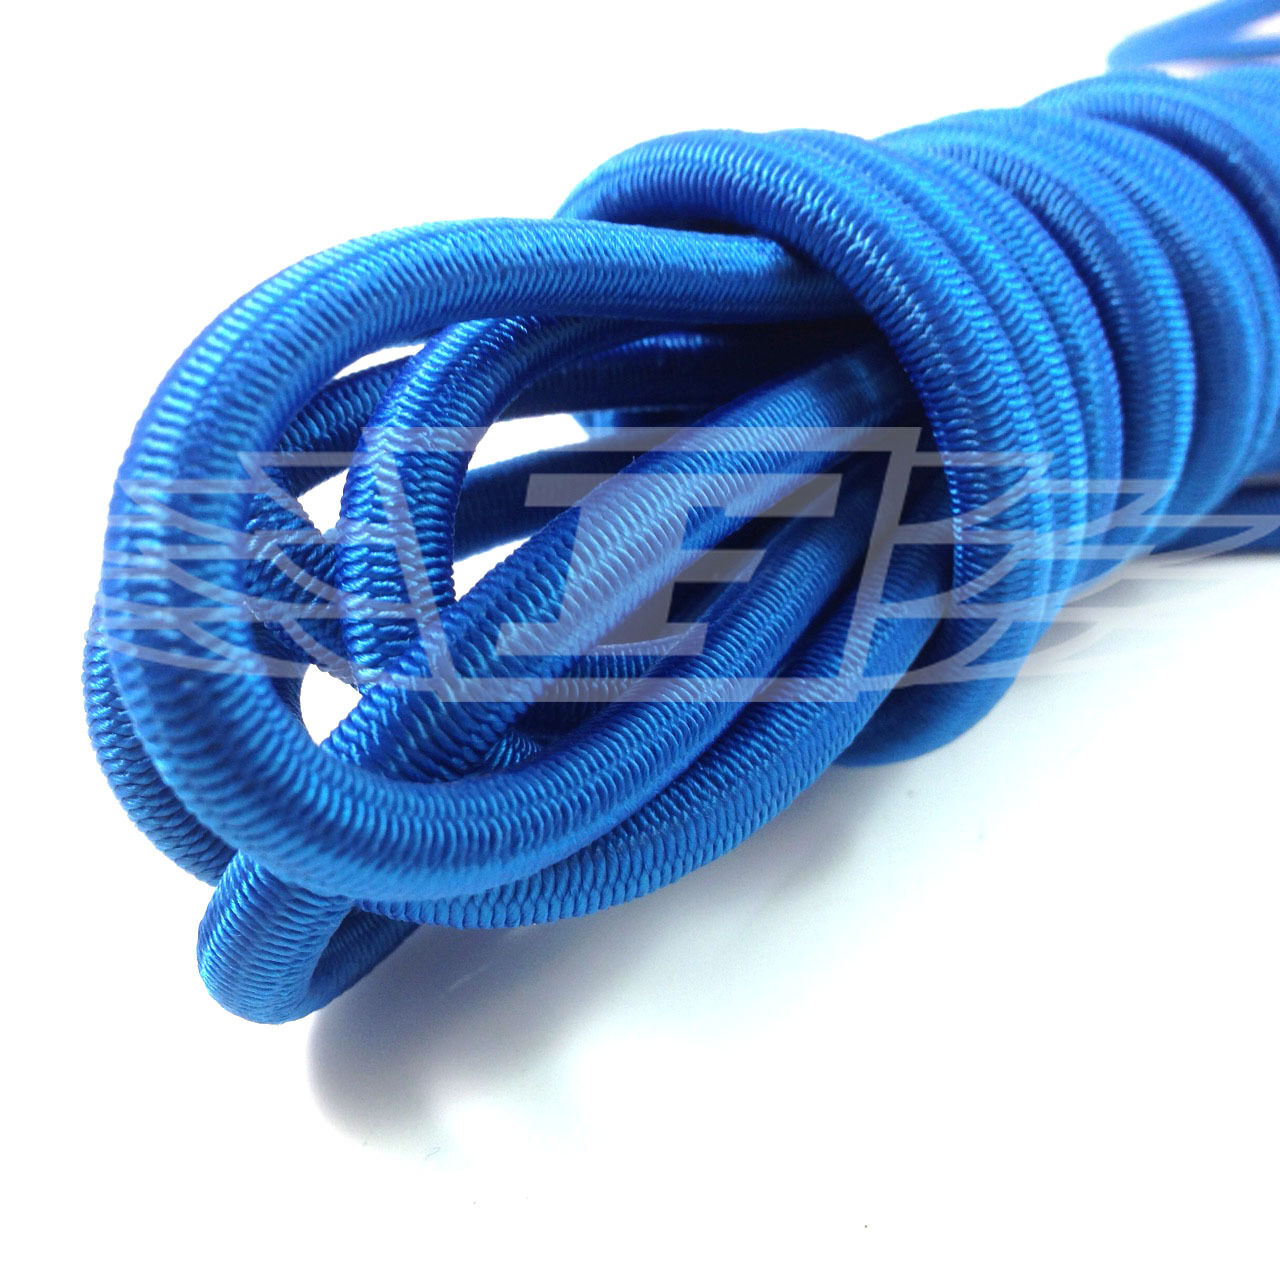 6 METRES OF BLACK REPLACEMENT TODDLERS TRAMPOLINE ELASTIC 10mm THICK BUNGEE CORD